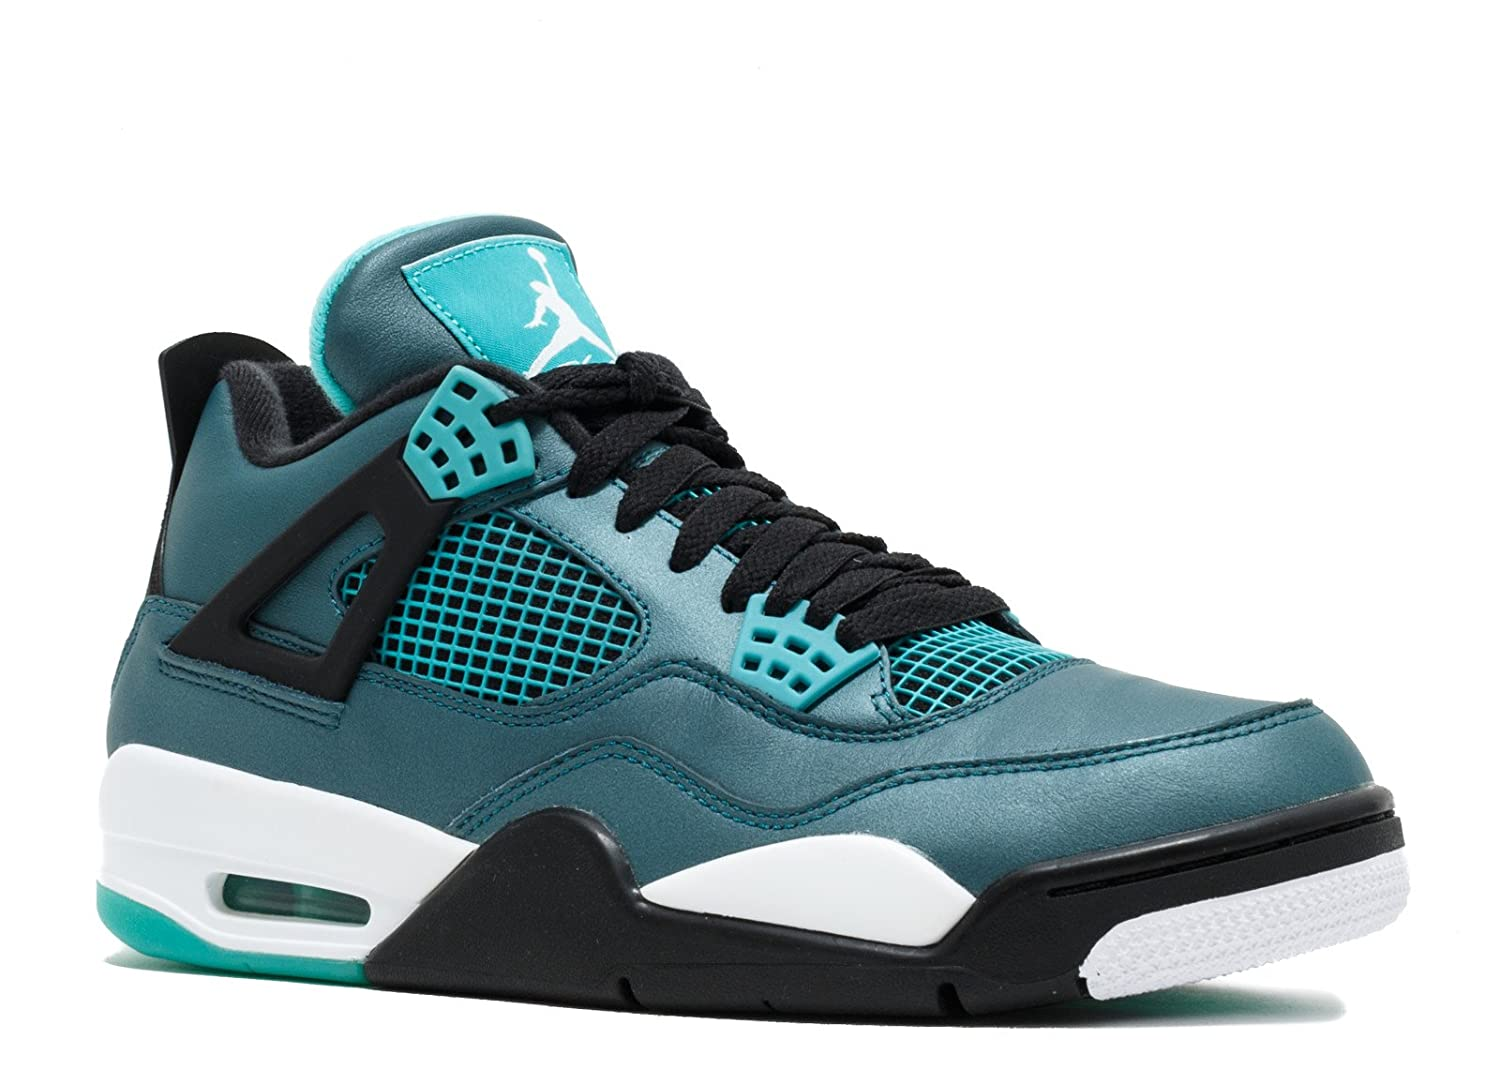 Teal, white-black Nike Jordan Kids Air Jordan 4 Retro Bg Basketball shoes